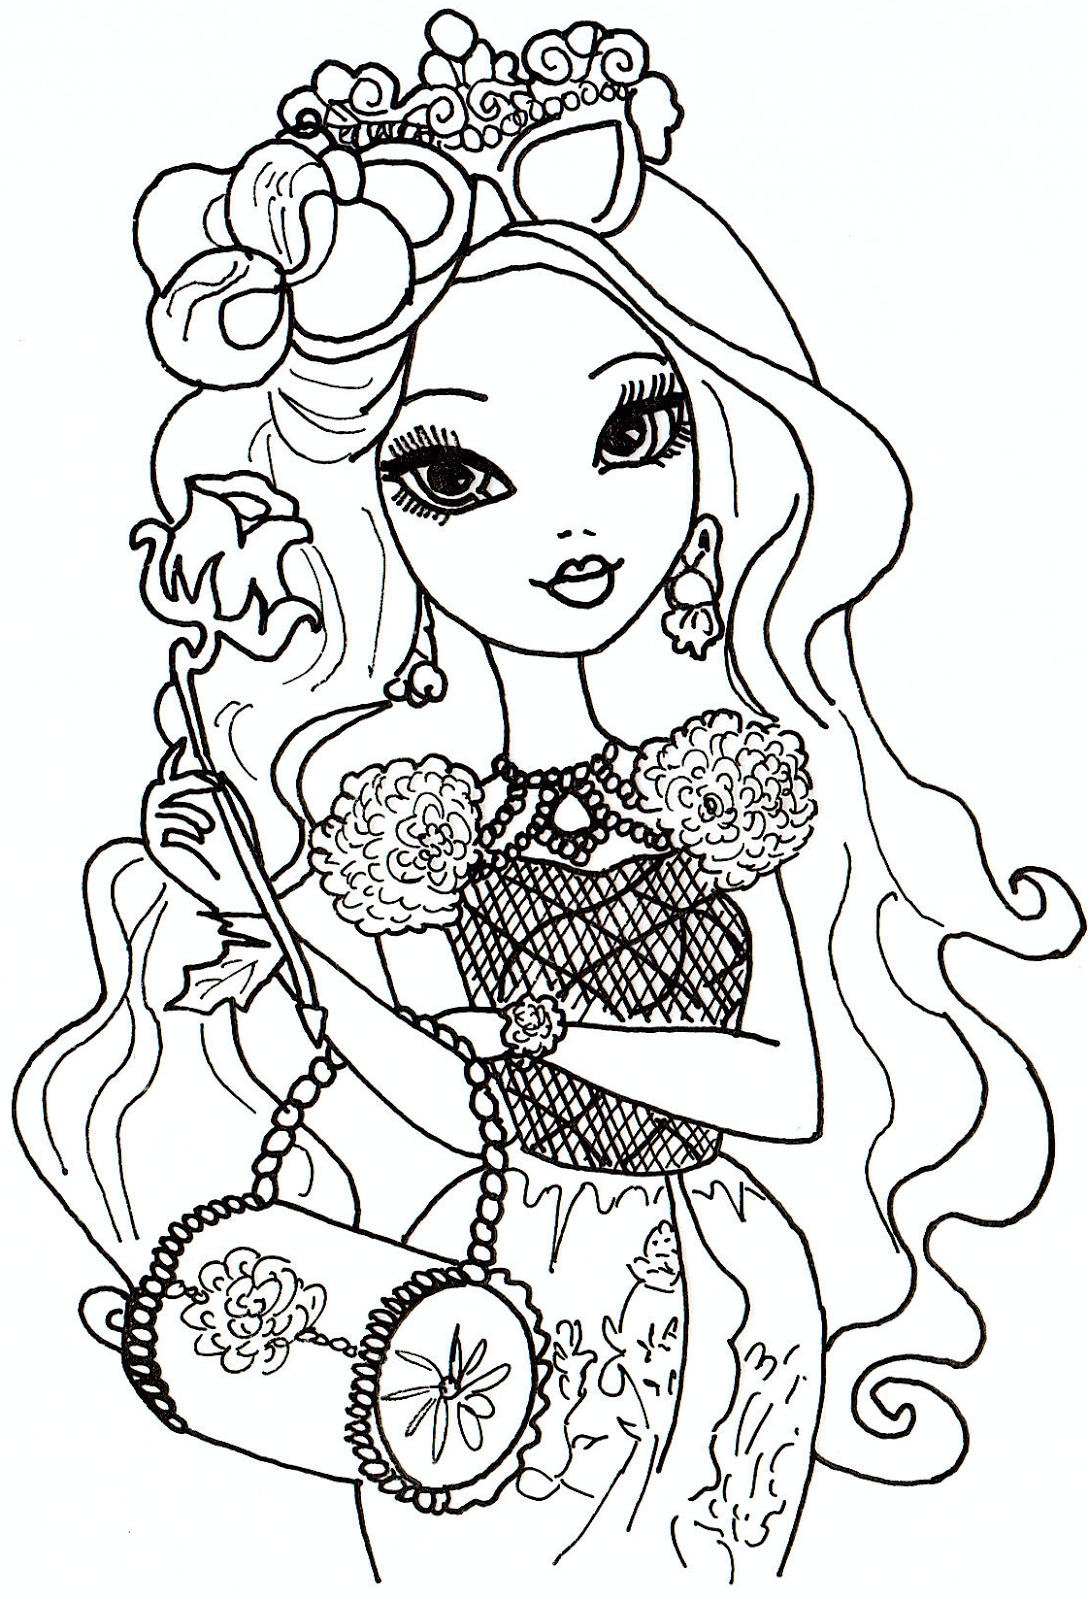 Kids-n-fun.com | 49 coloring pages of Ever After High | 1600x1088